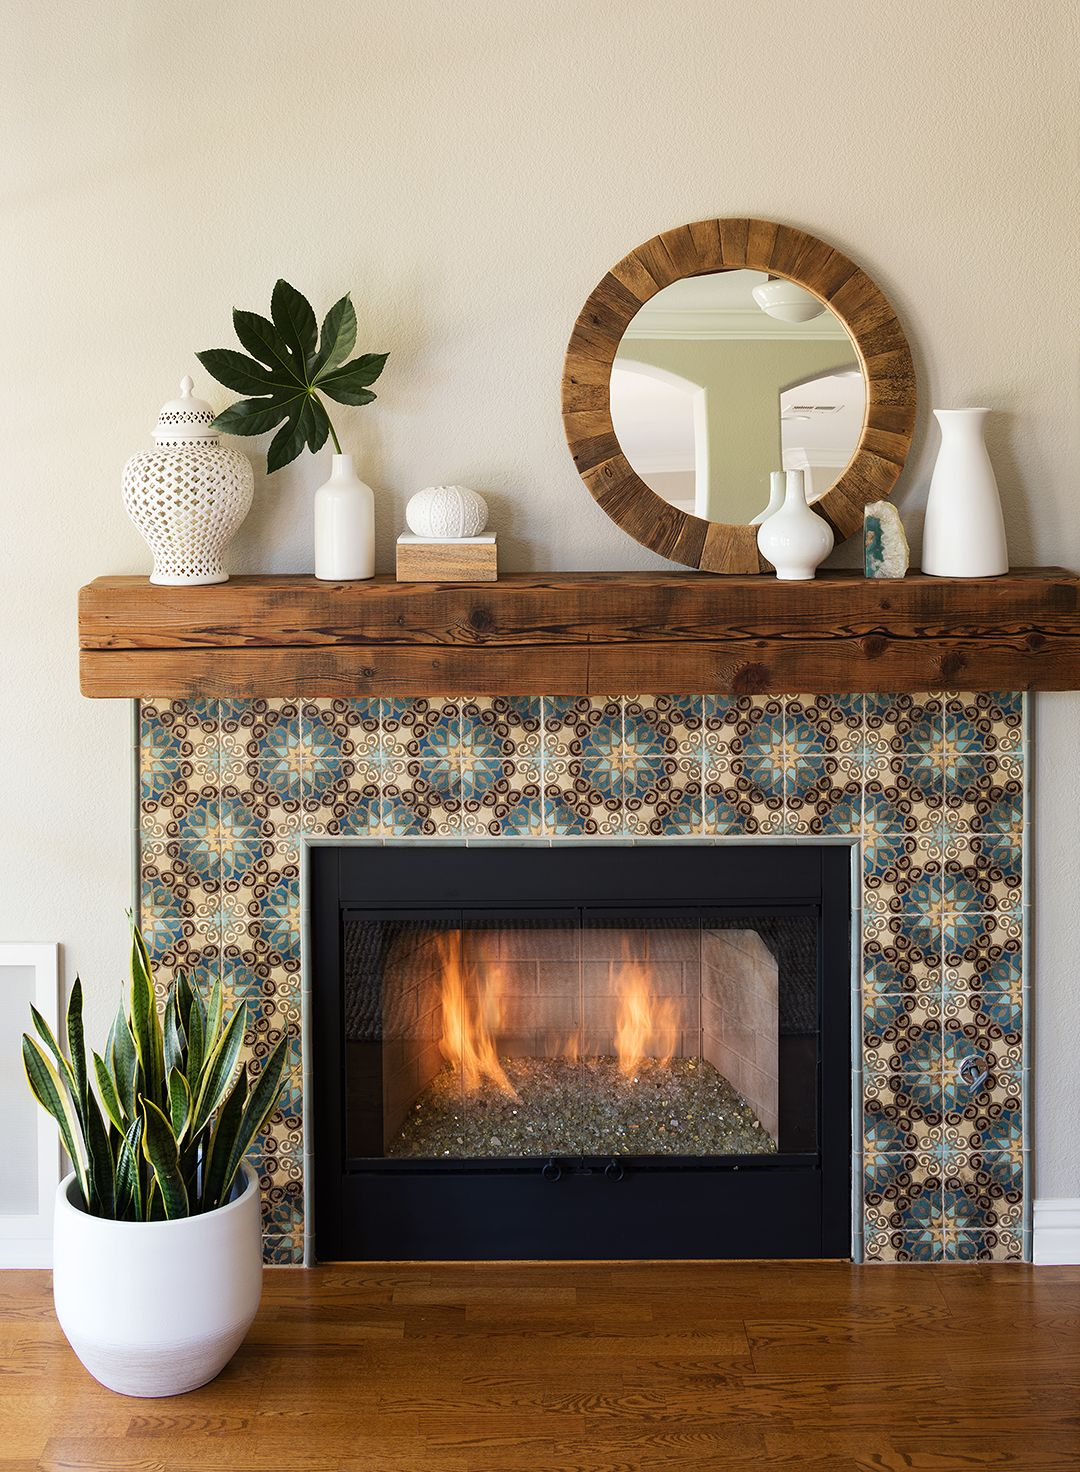 How to install stacked stone tile on drywall fireplace